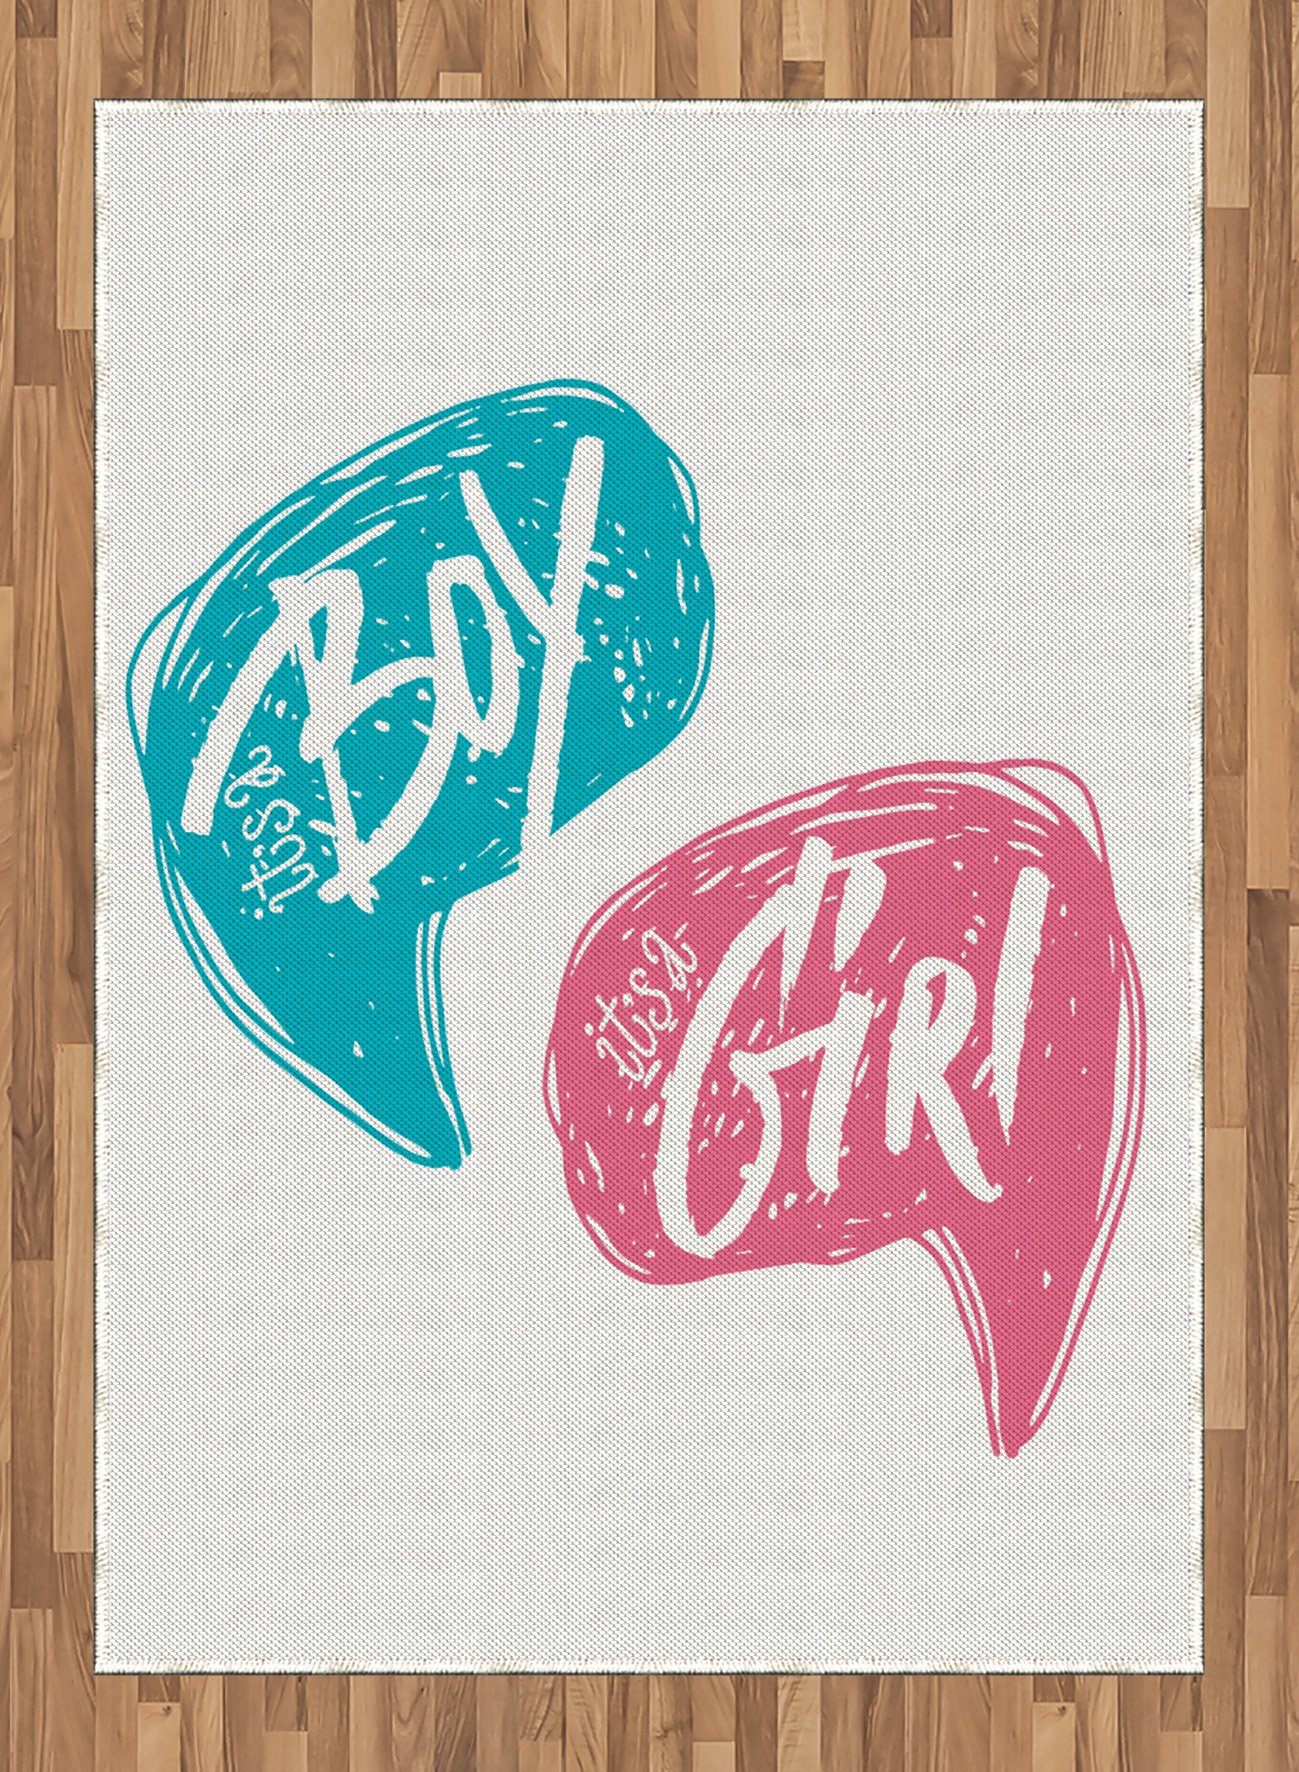 Gender Reveal Area Rug by Ambesonne, Hand Drawn Style Sketch Boy and Girl Letters Toddler Baby Shower Art, Flat Woven Accent Rug for Living Room Bedroom Dining Room, 5.2 x 7.5 FT, Teal Pink White